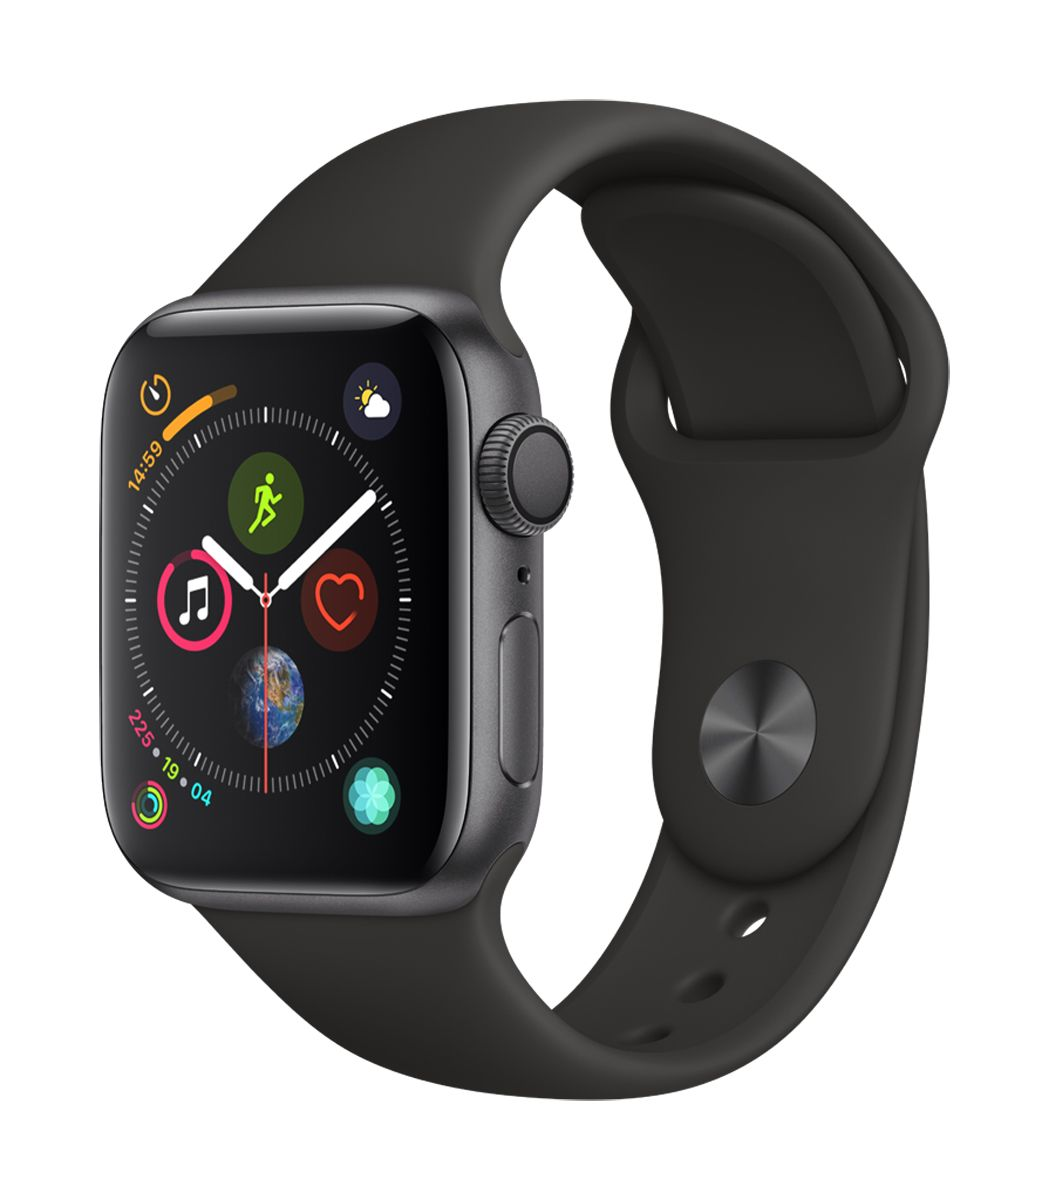 best loved 04161 0d02e Apple Watch Series 4 GPS 40mm Space Gray Aluminum Case with Black Sport Band